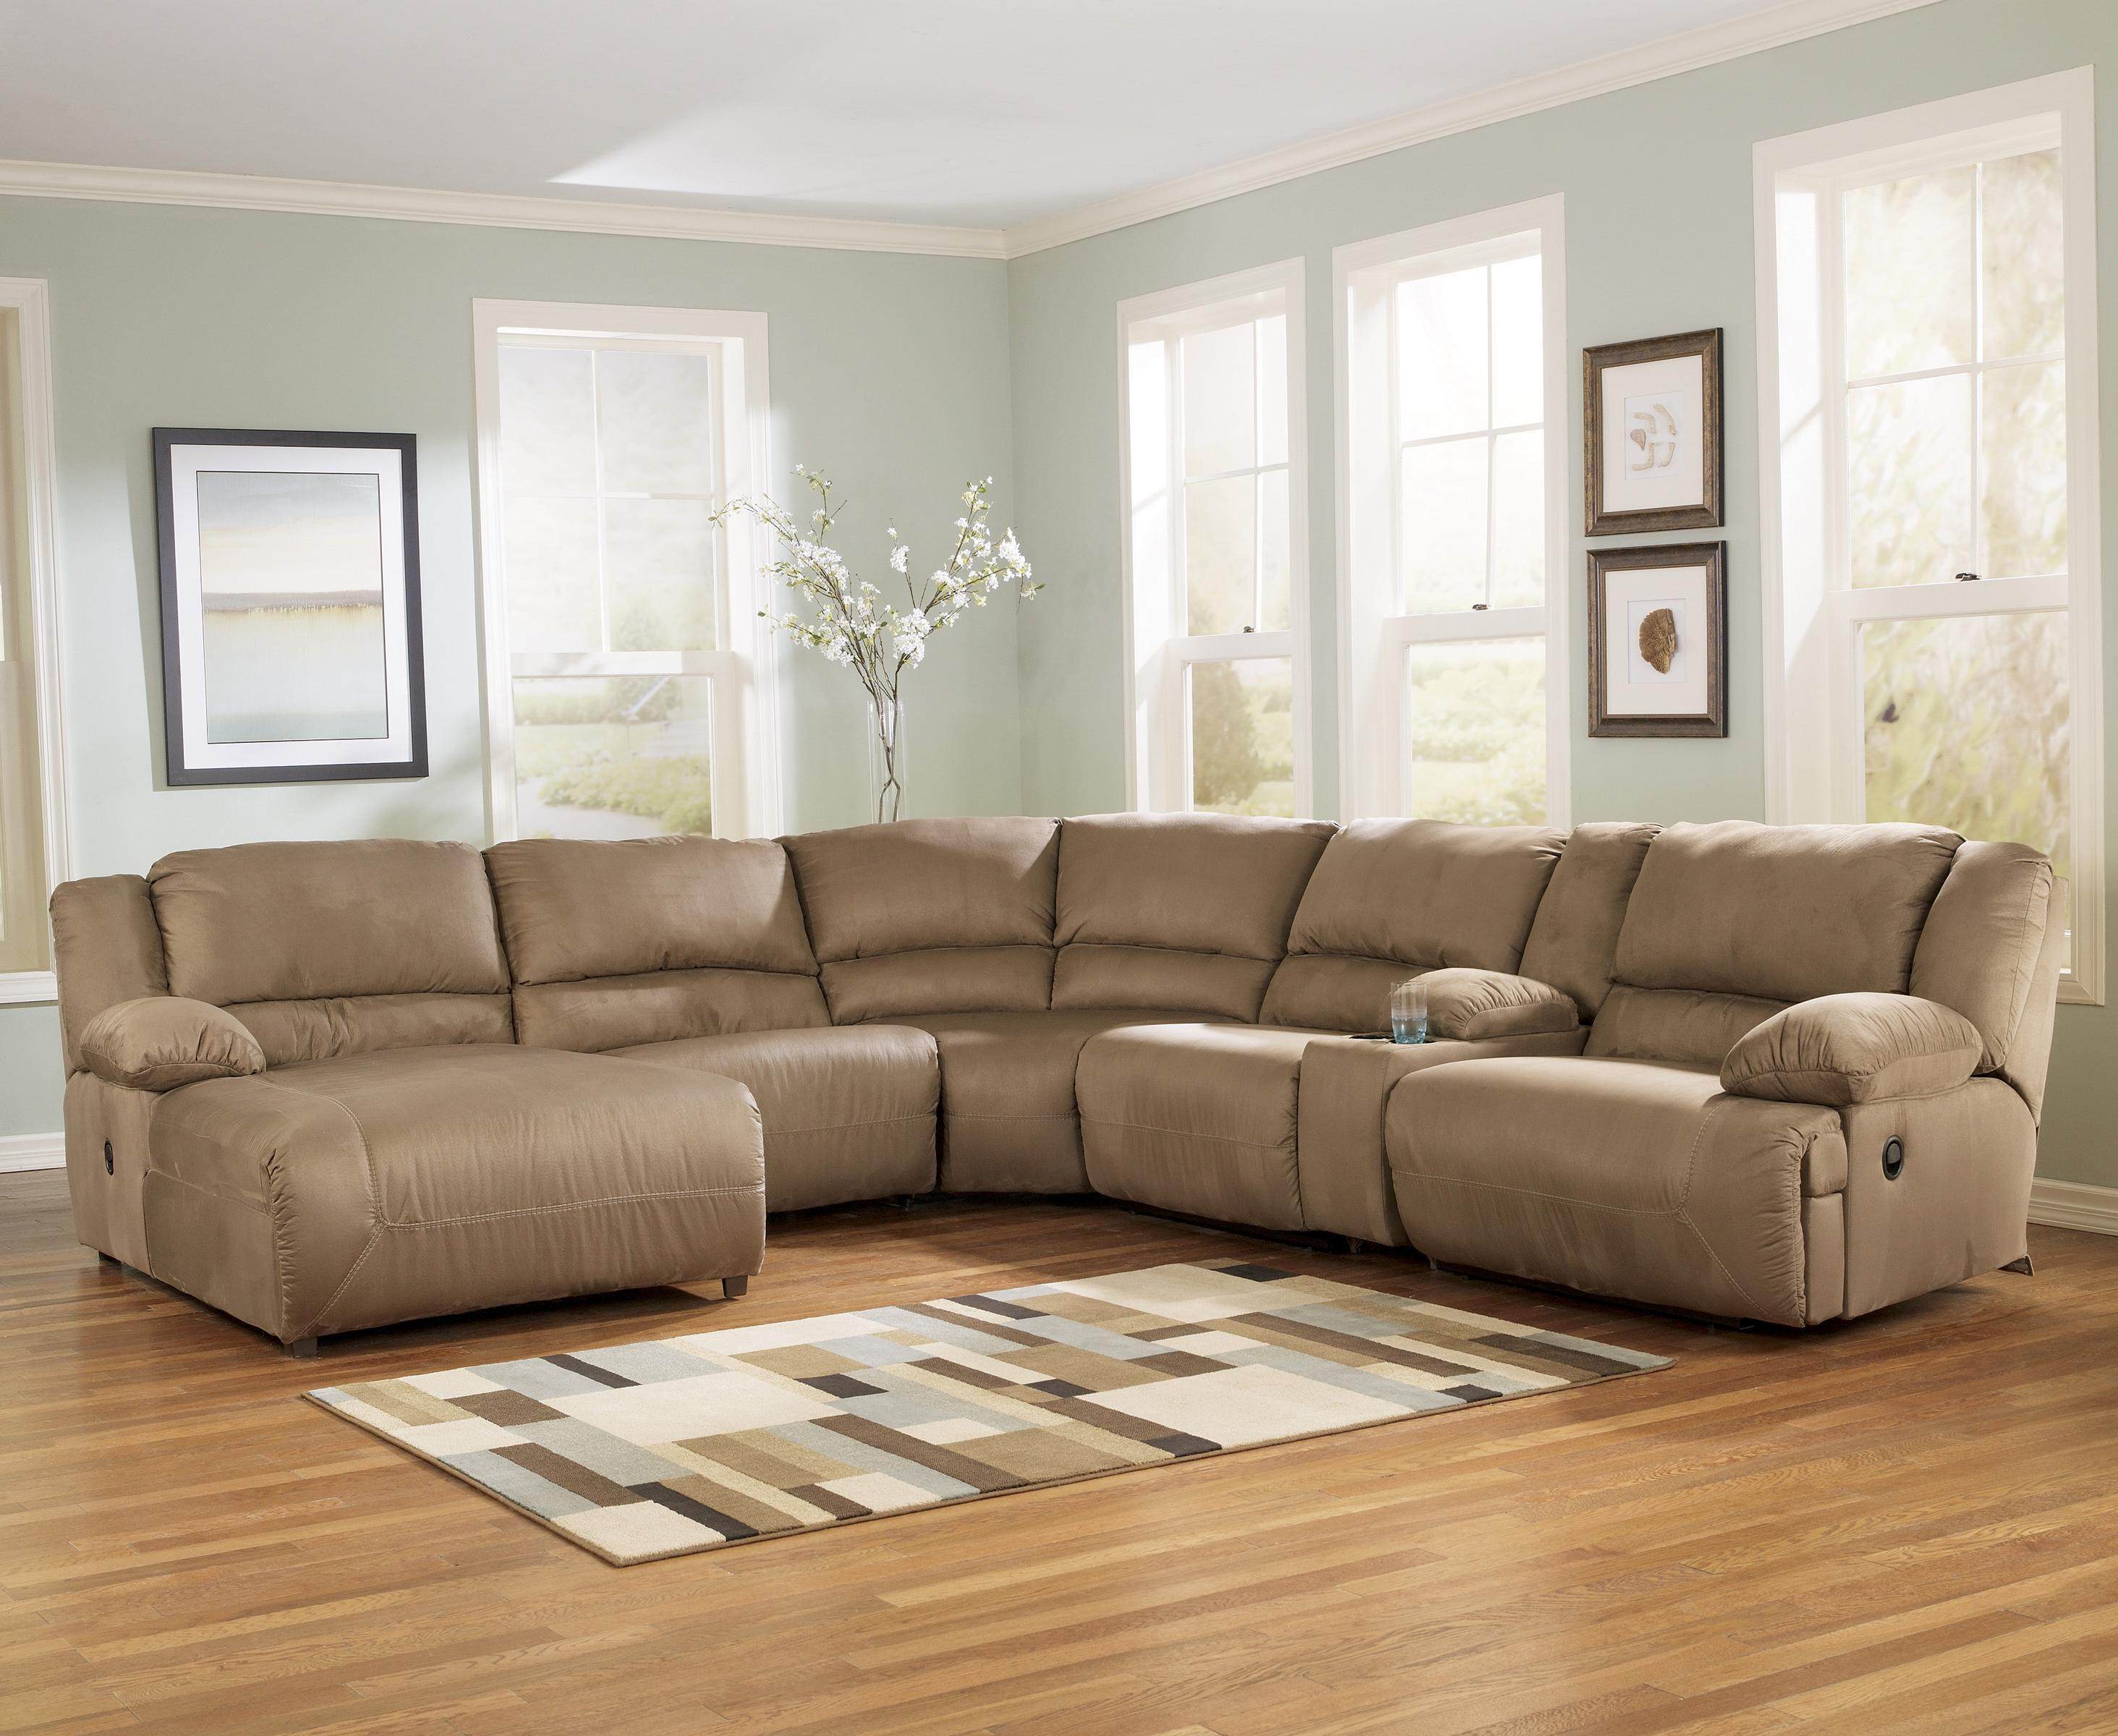 6 piece motion sectional with left chaise and console by for Ashley sectionals with chaise